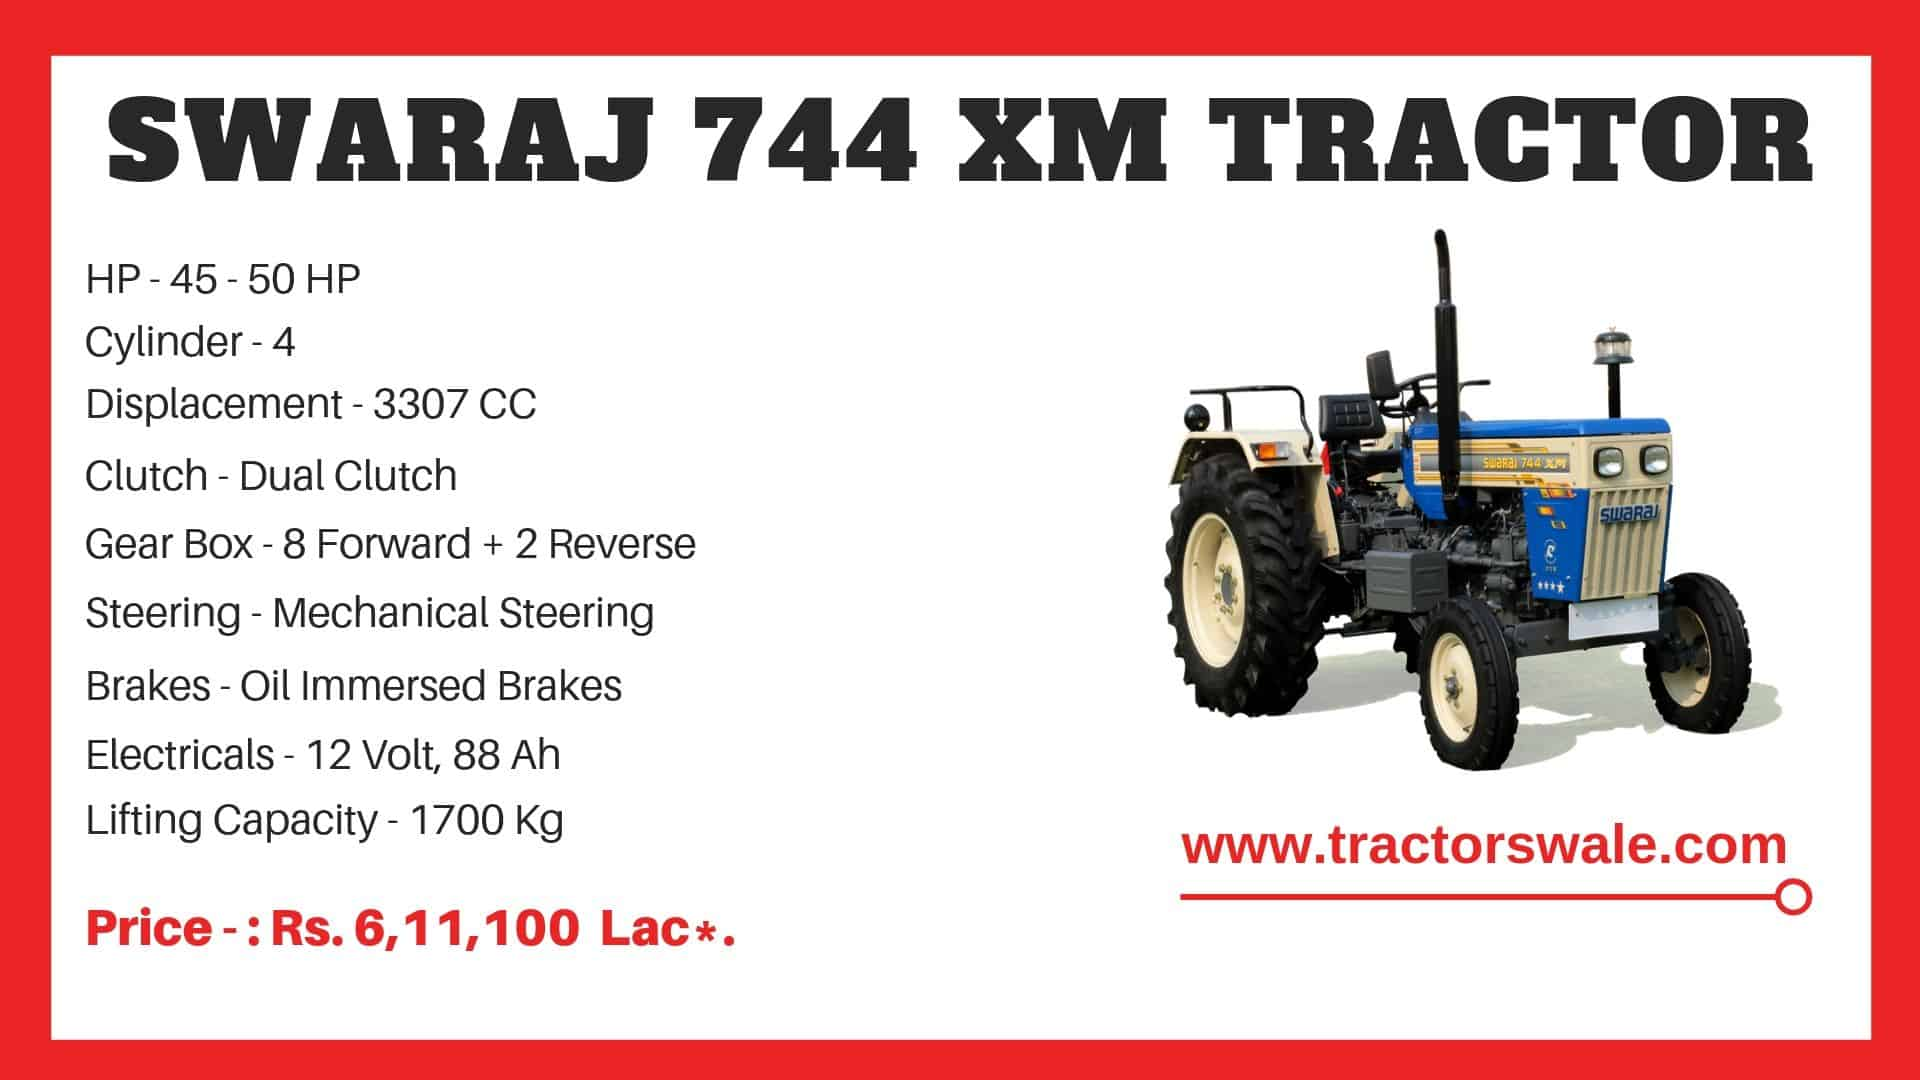 Specification of Swaraj 744 XM Tractor